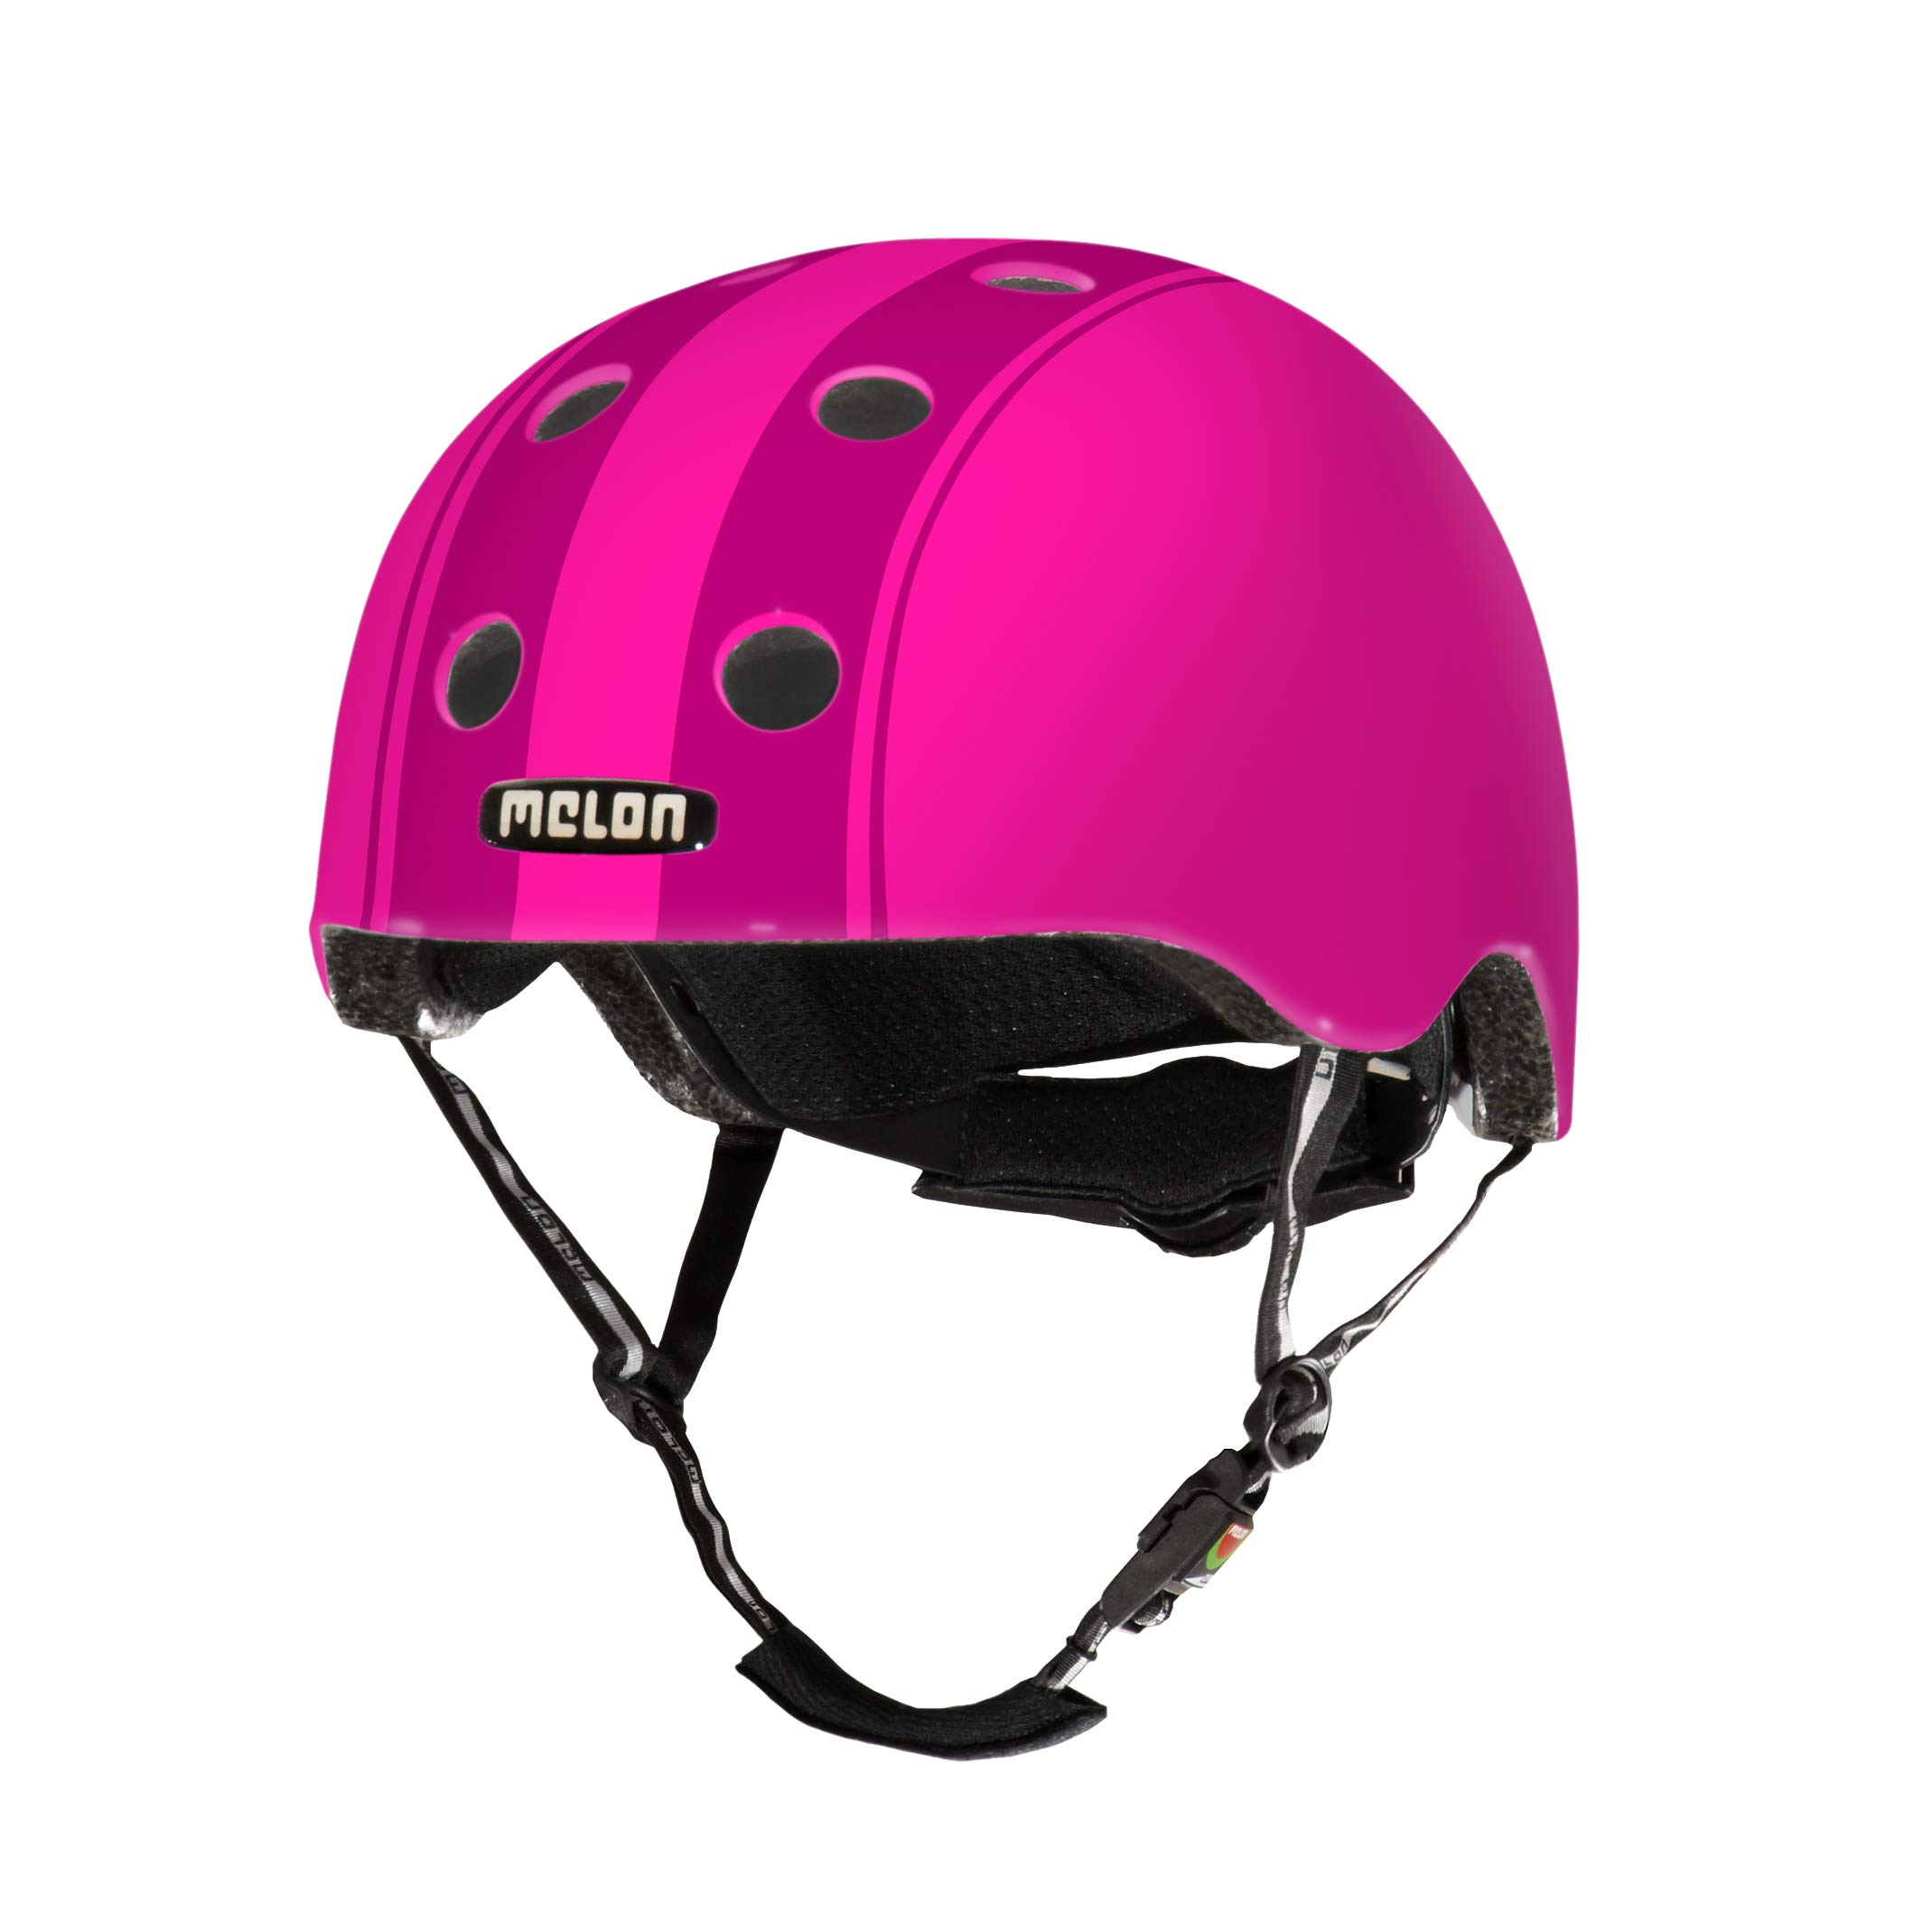 Melon Decent Double Purple Helmet, Purple, Matte Finish, Large, 58 - 63cm / 22.75 - 25in Head Size